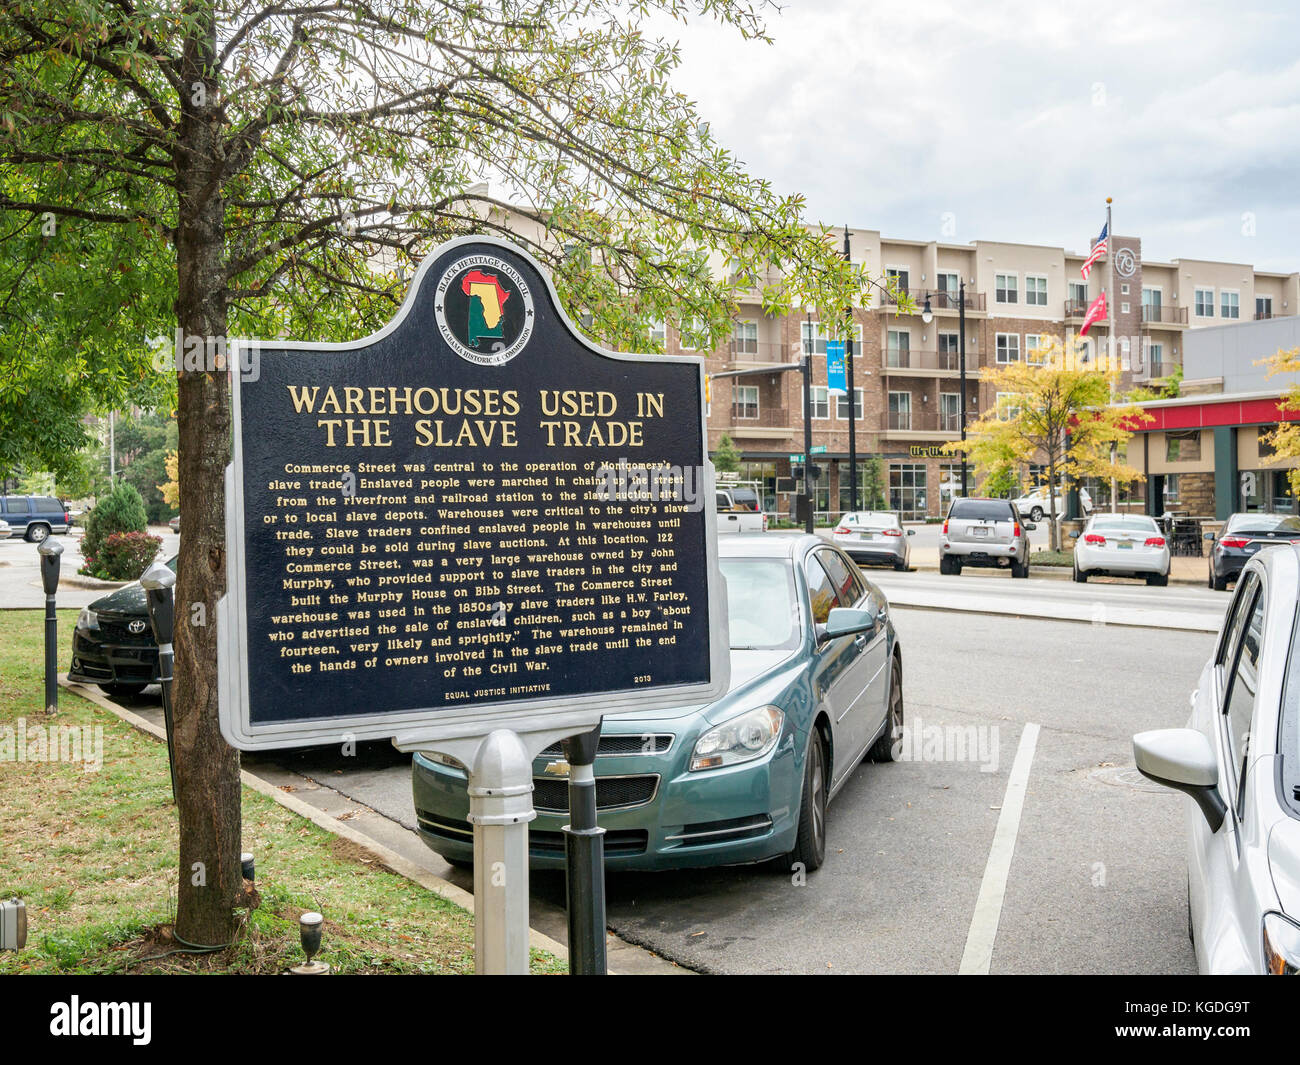 Historical marker describing the warehouses used in the 1800's during the height of the slave trade in Montgomery, - Stock Image